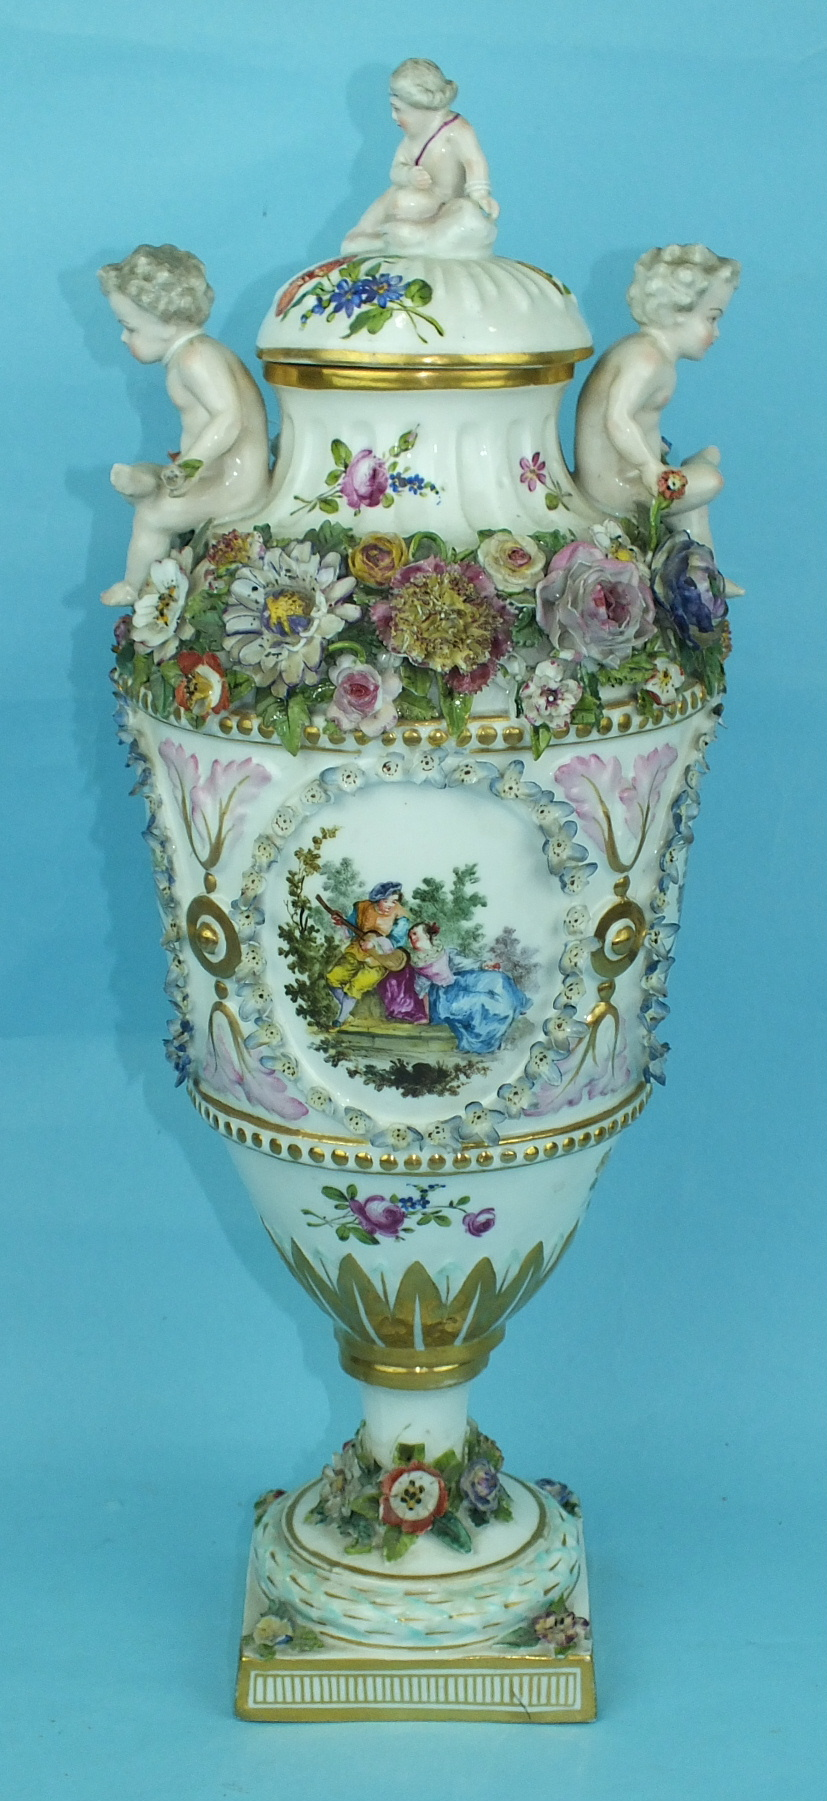 A large 19th century Continental porcelain vase and cover painted with an oval panel of a courting